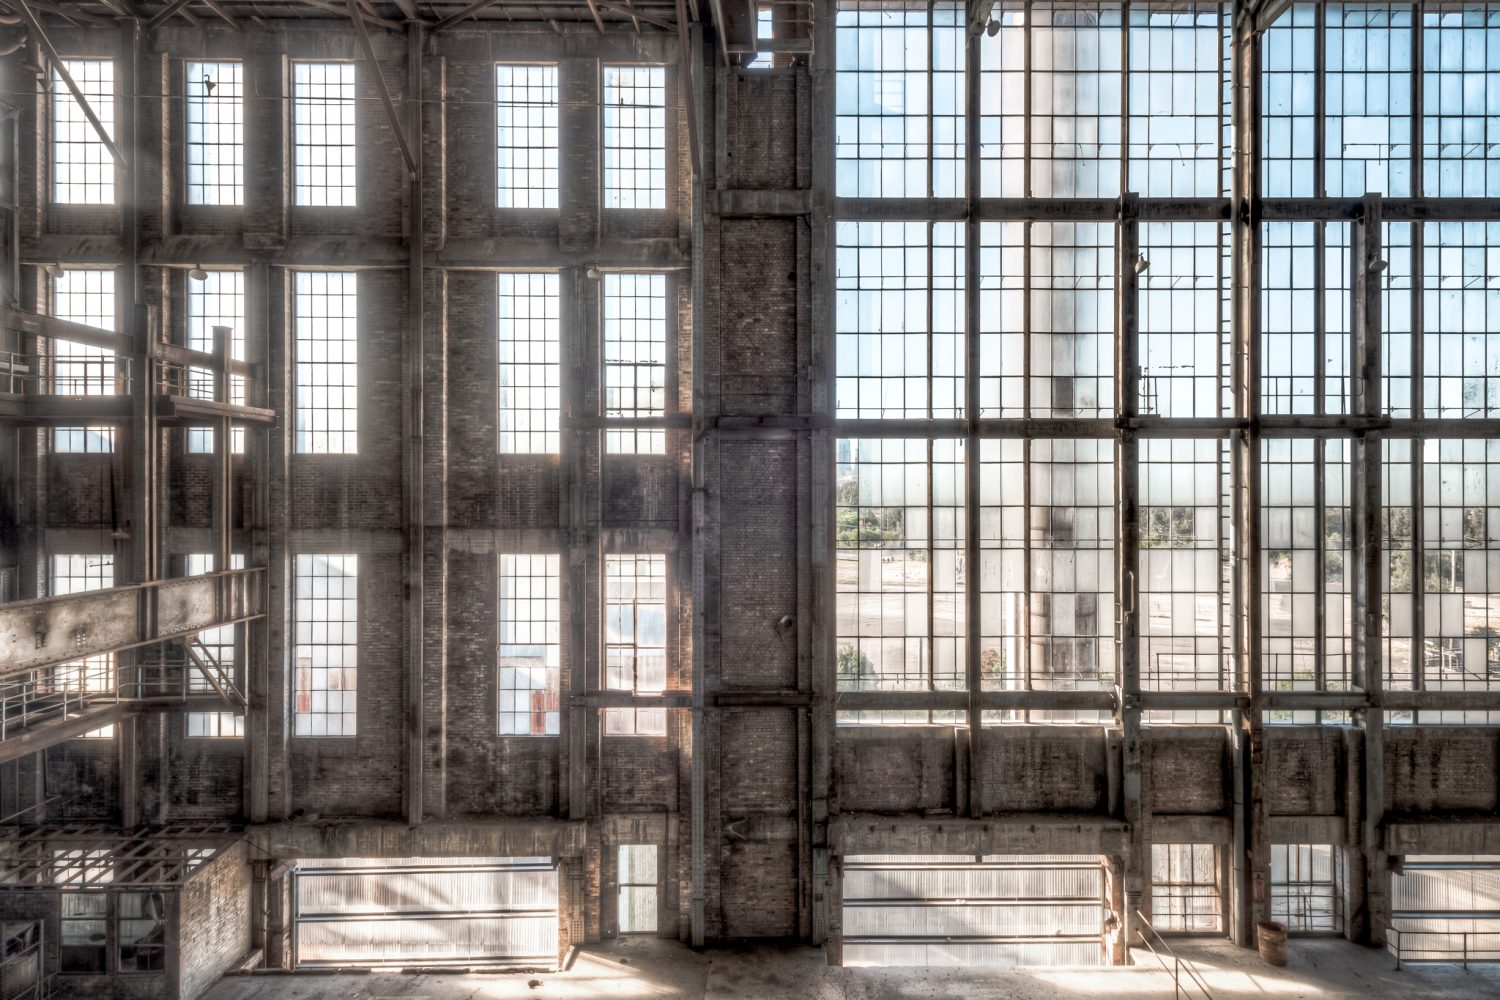 White Bay Power Station, looking across the Boiler House to a Chimney Stack rising through a wall of tall windows.